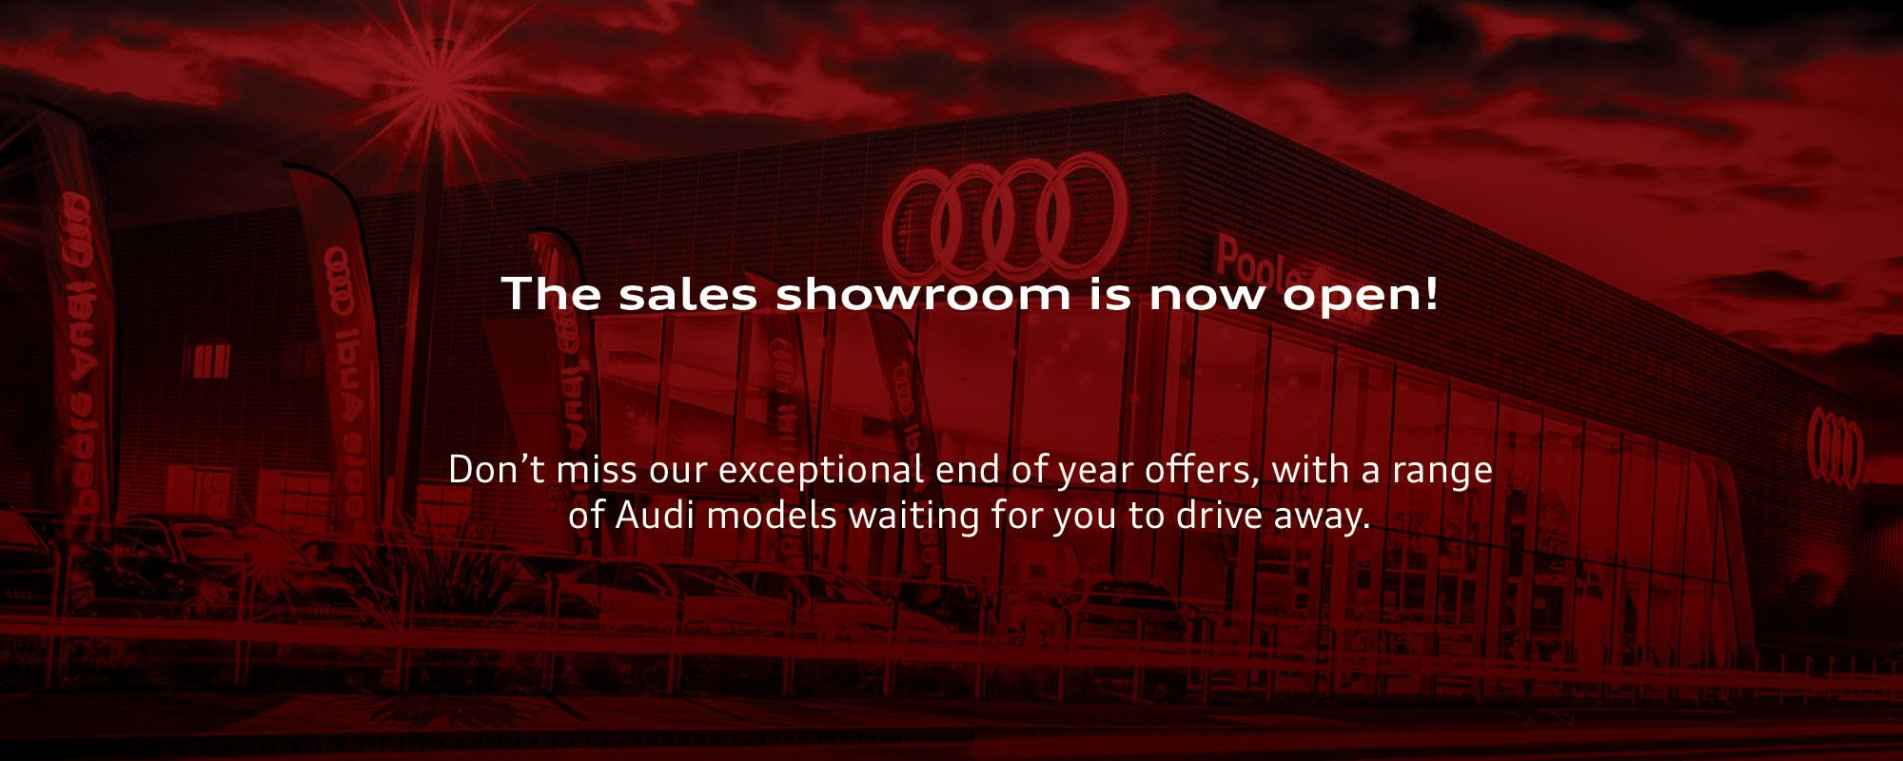 The sales showroom is now open!